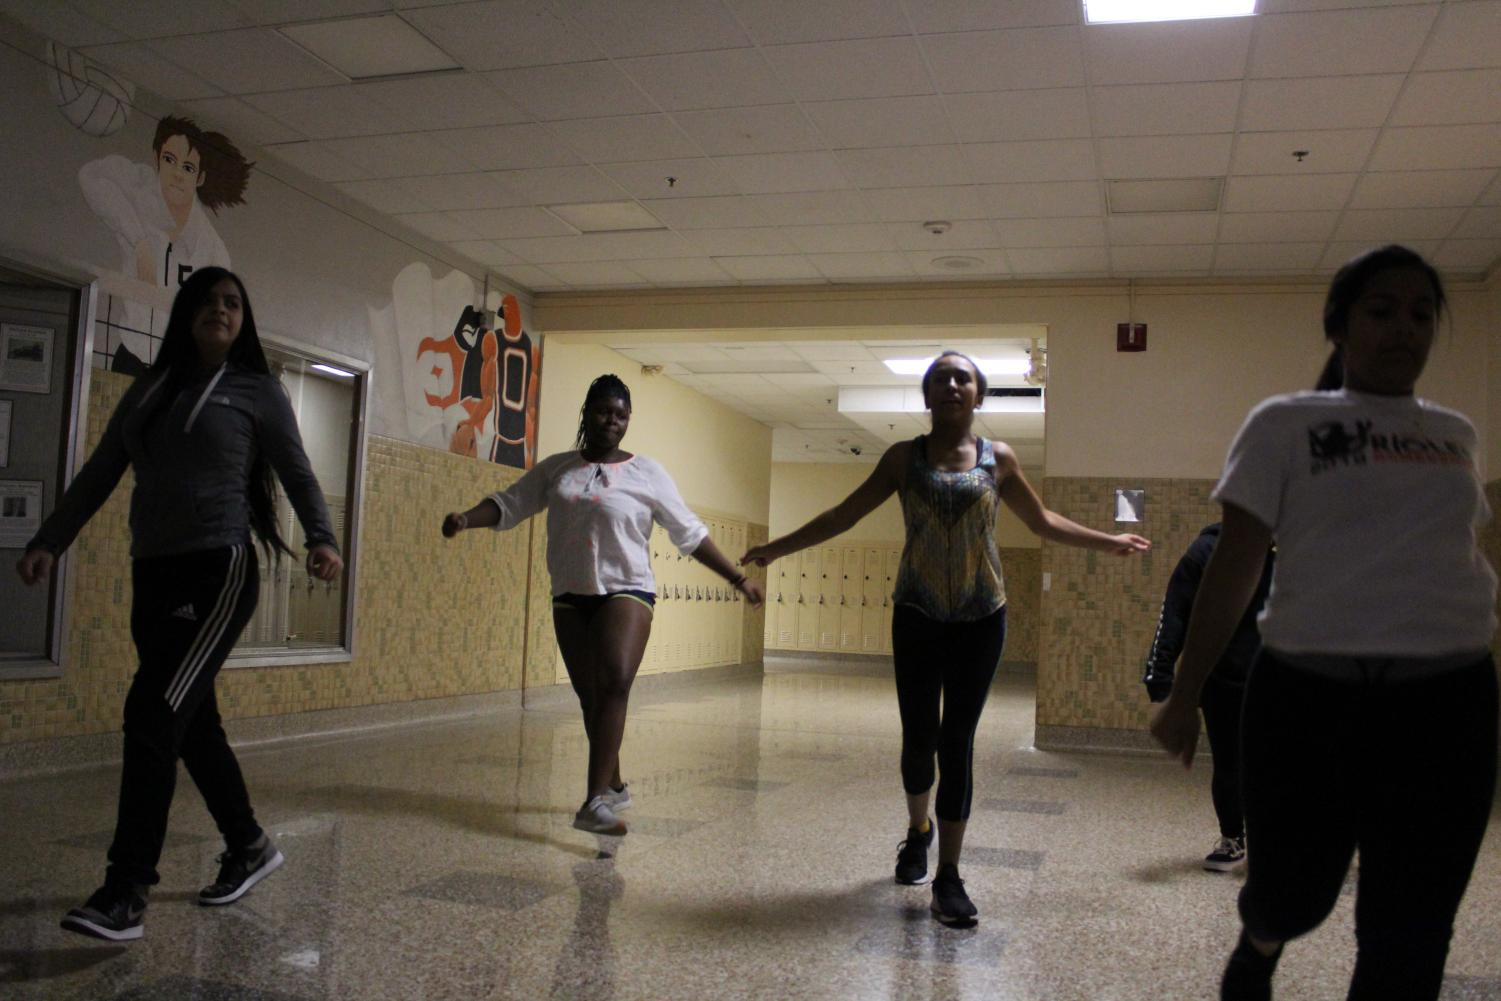 Park's new dance team practices one of their routines, choreographed by coach Tontiana Kendricks, in the Dakota Foyer after school Nov. 1. The team is rehearsing multiple different routines which they will perform at boys' basketball games this winter.